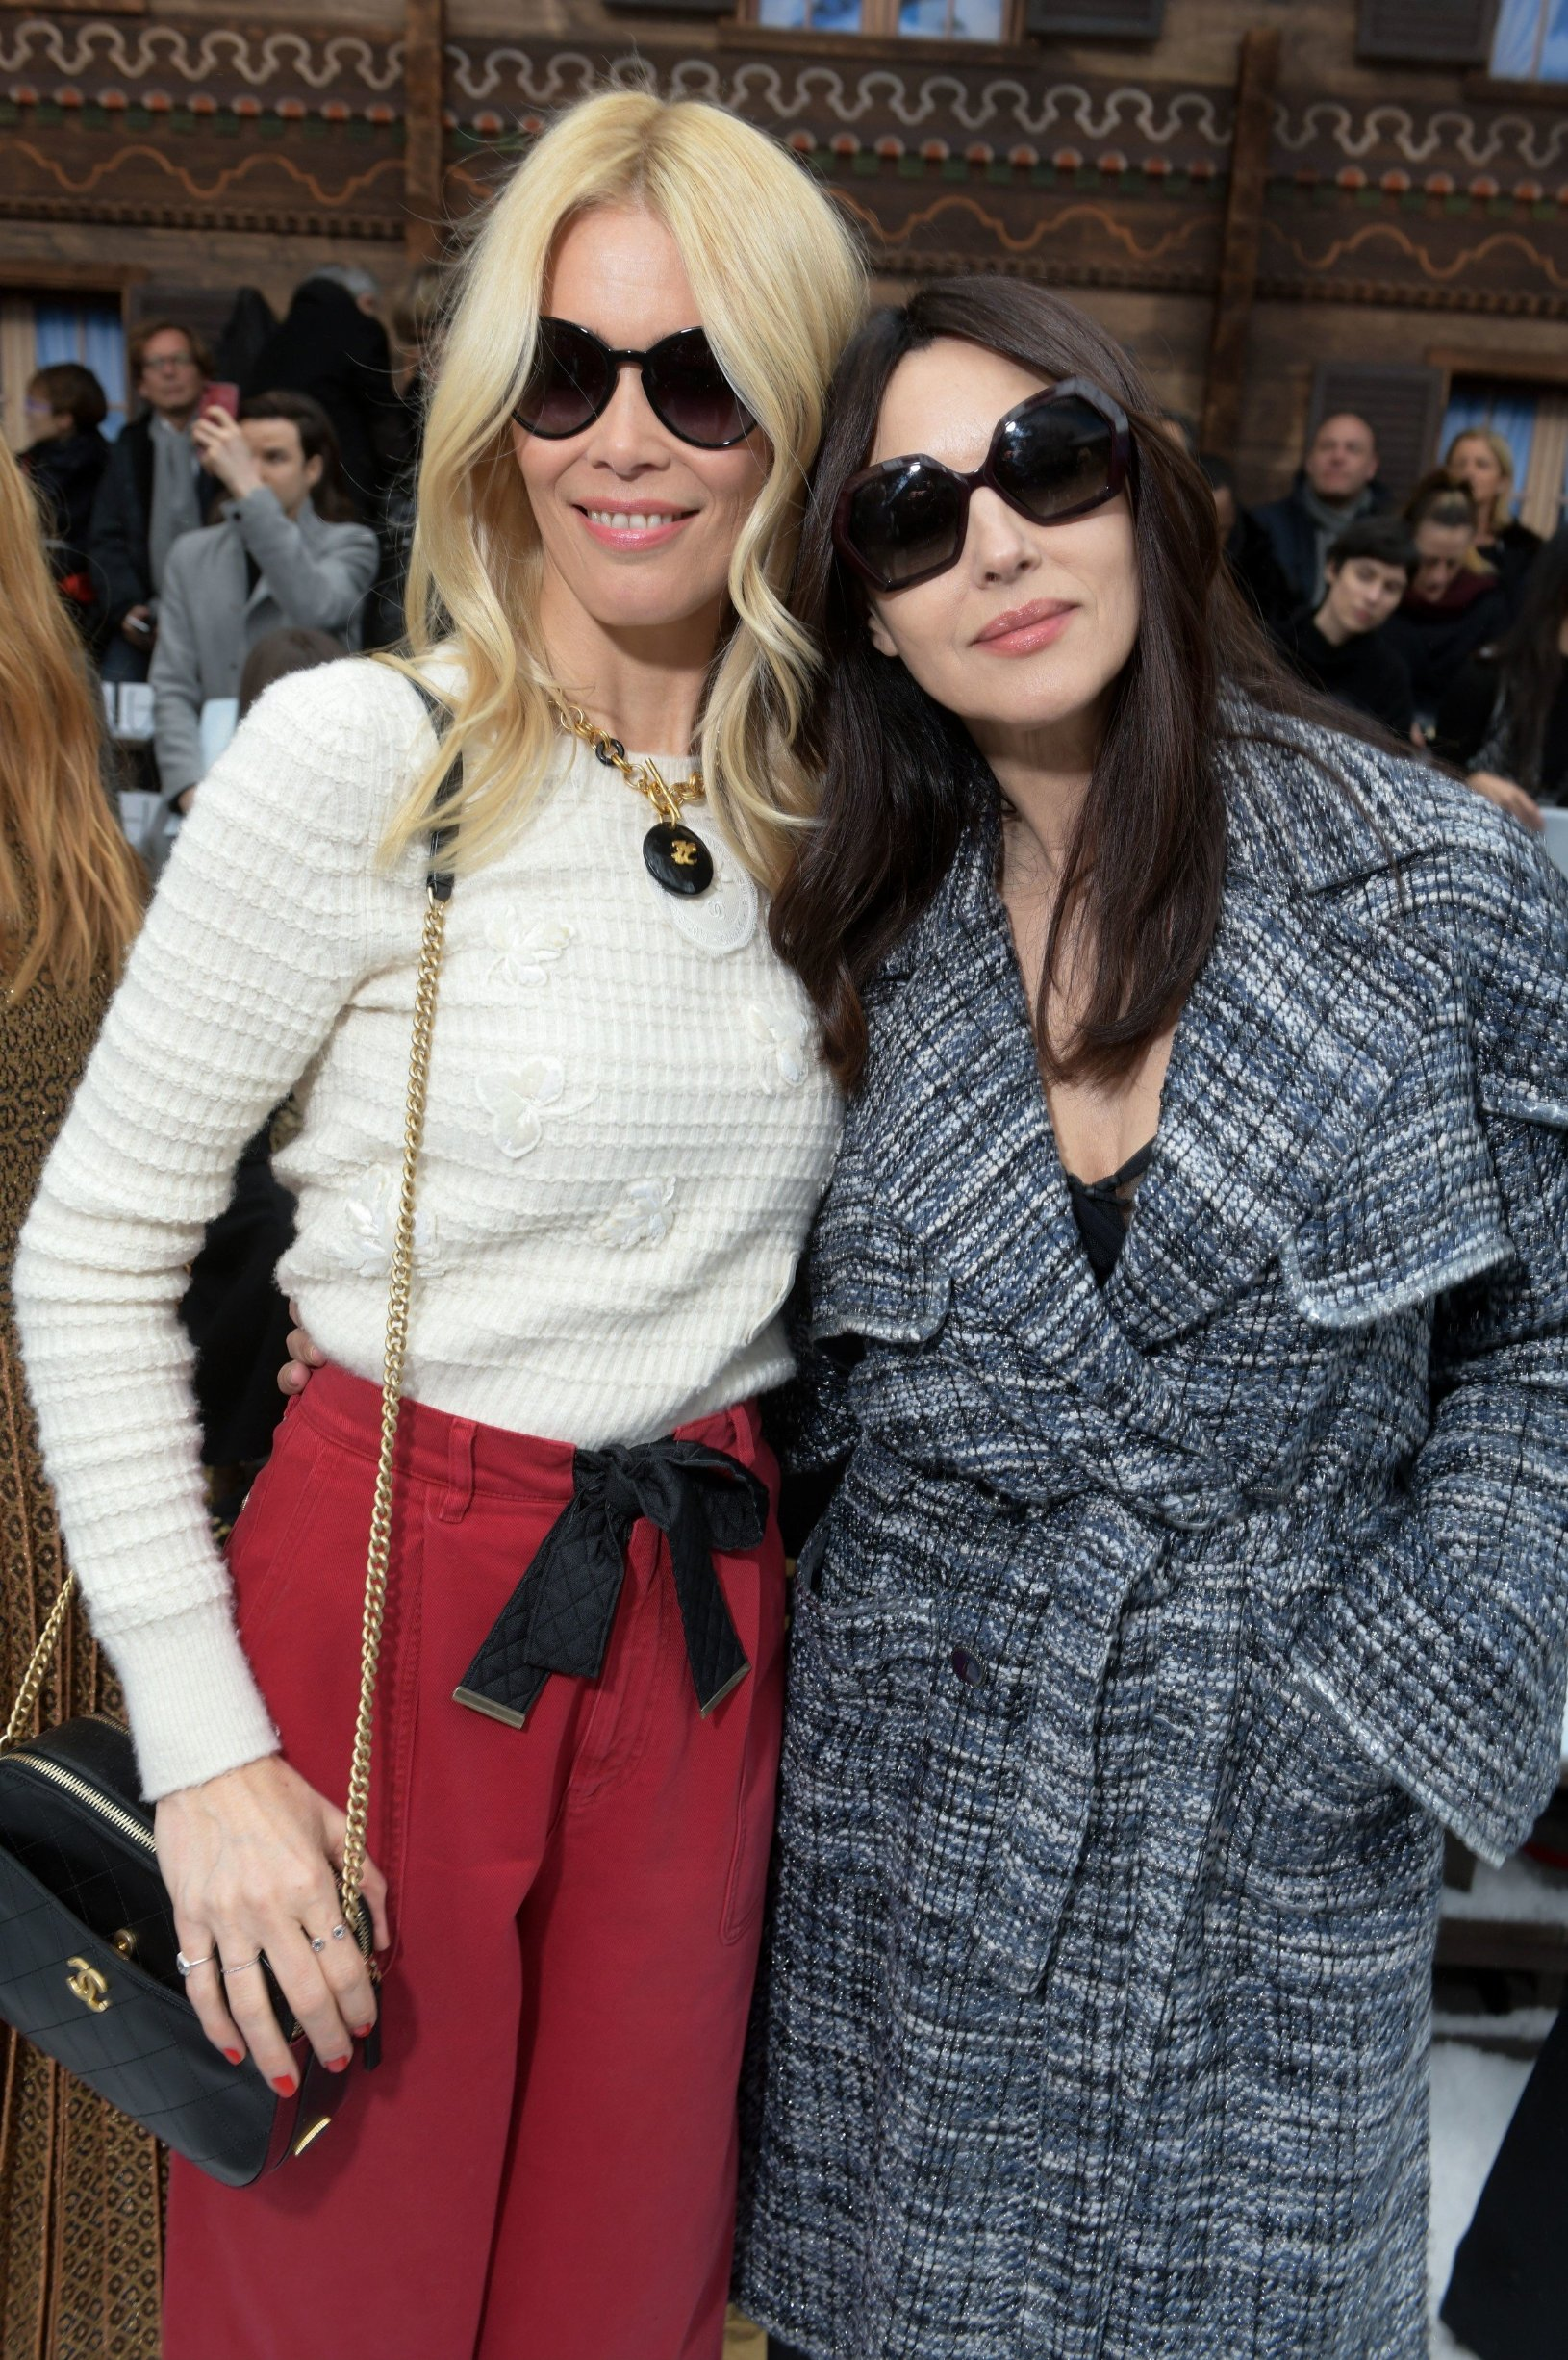 Claudia Schiffer and Monica Bellucci in the front row Chanel show, Front Row, Fall Winter 2019, Paris Fashion Week, France - 05 Mar 2019, Image: 417334057, License: Rights-managed, Restrictions: , Model Release: no, Credit line: Profimedia, TEMP Rex Features